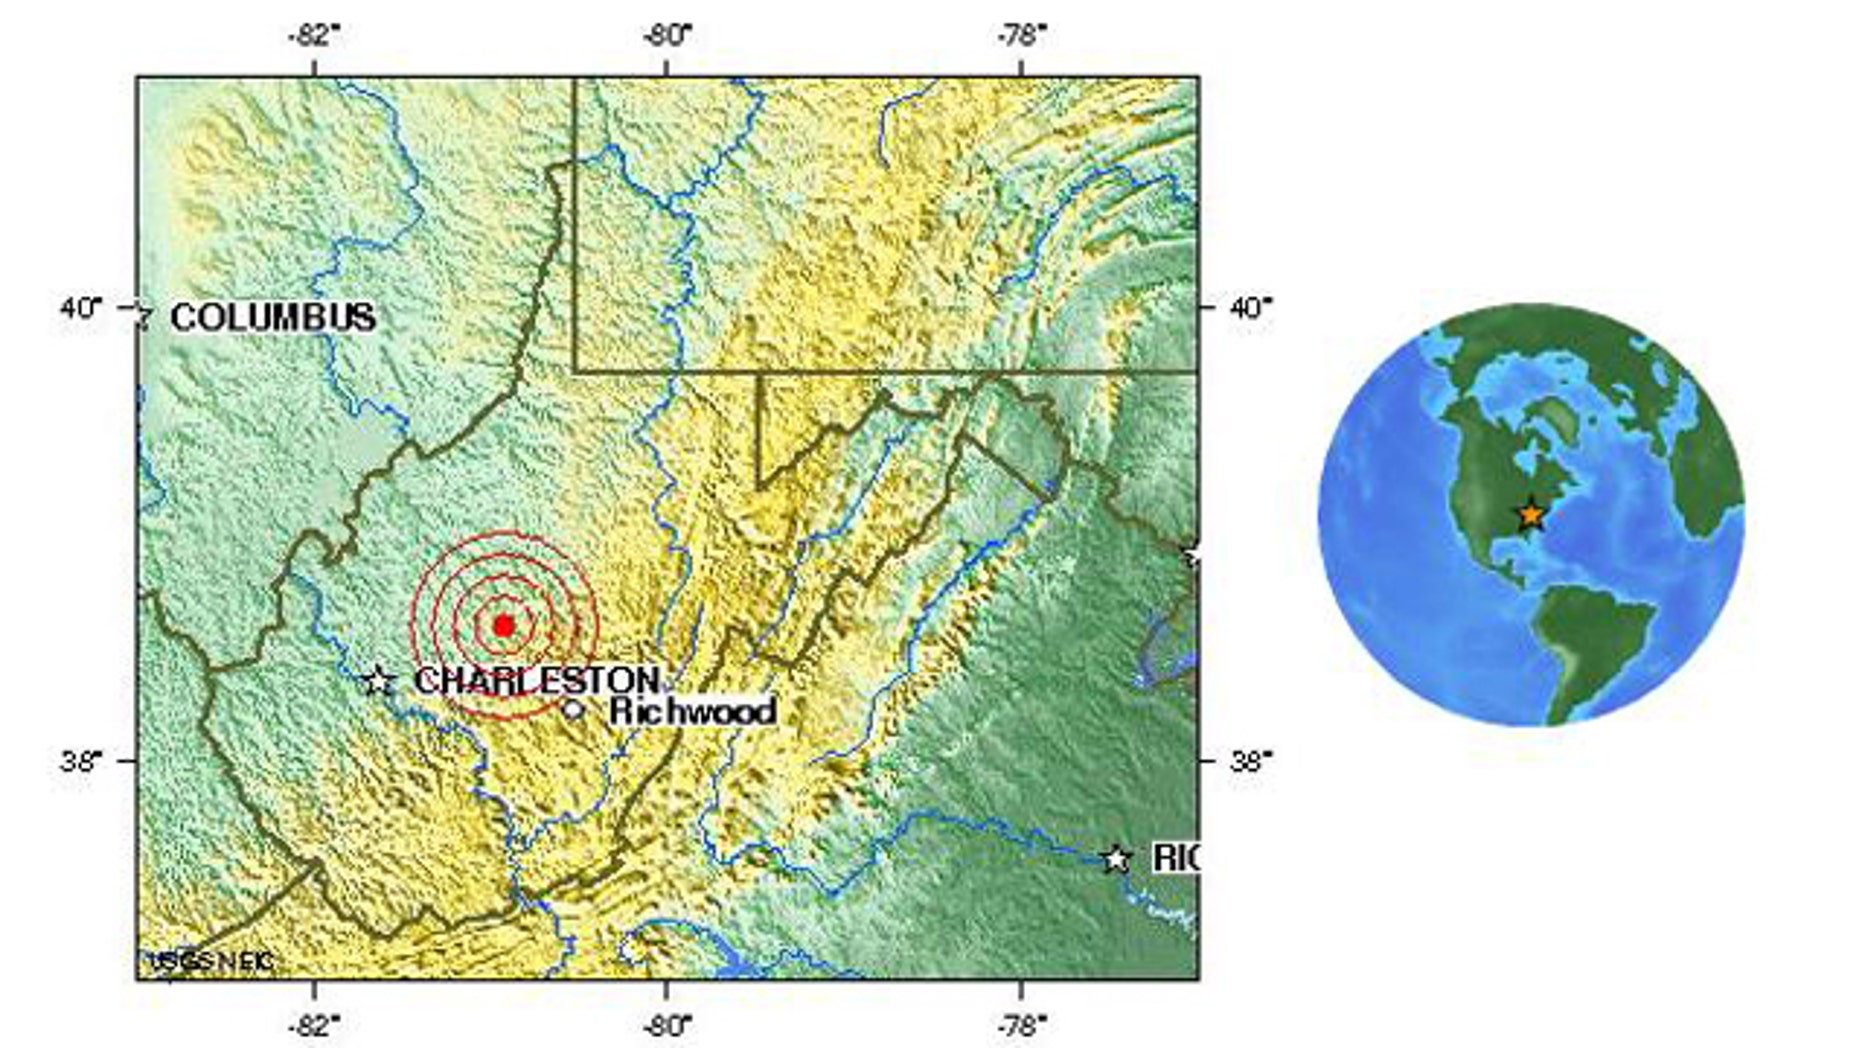 A map on the USGS Web site shows the location of a magnitude 3.4 earthquake that struck West Virgina April 4, mere days before a deadly methane gas explosion in a nearby mine.